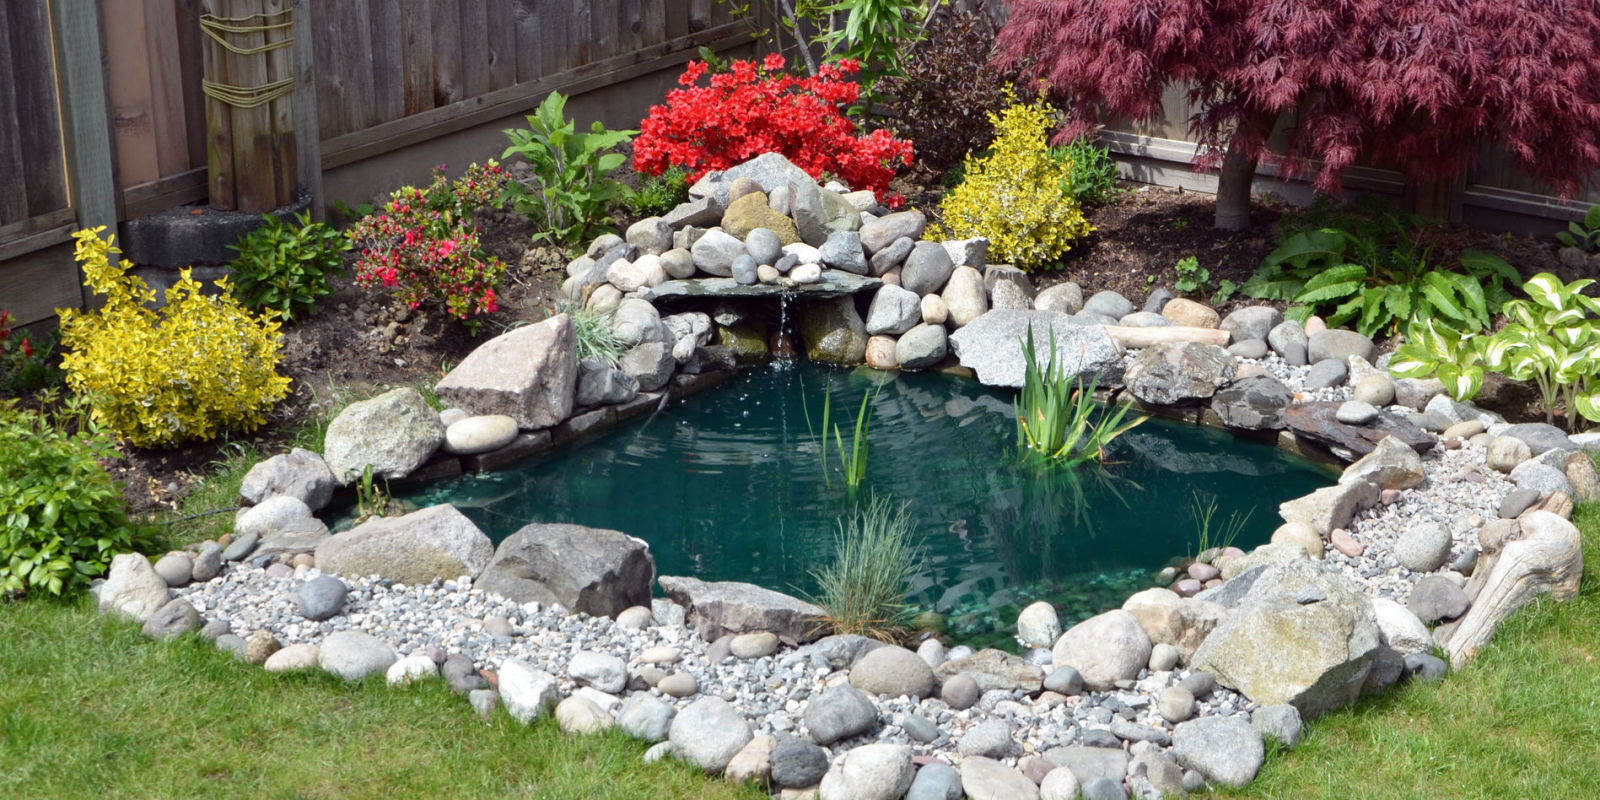 Garden structures and ornaments 5 golden rules to follow for Garden pool ornaments